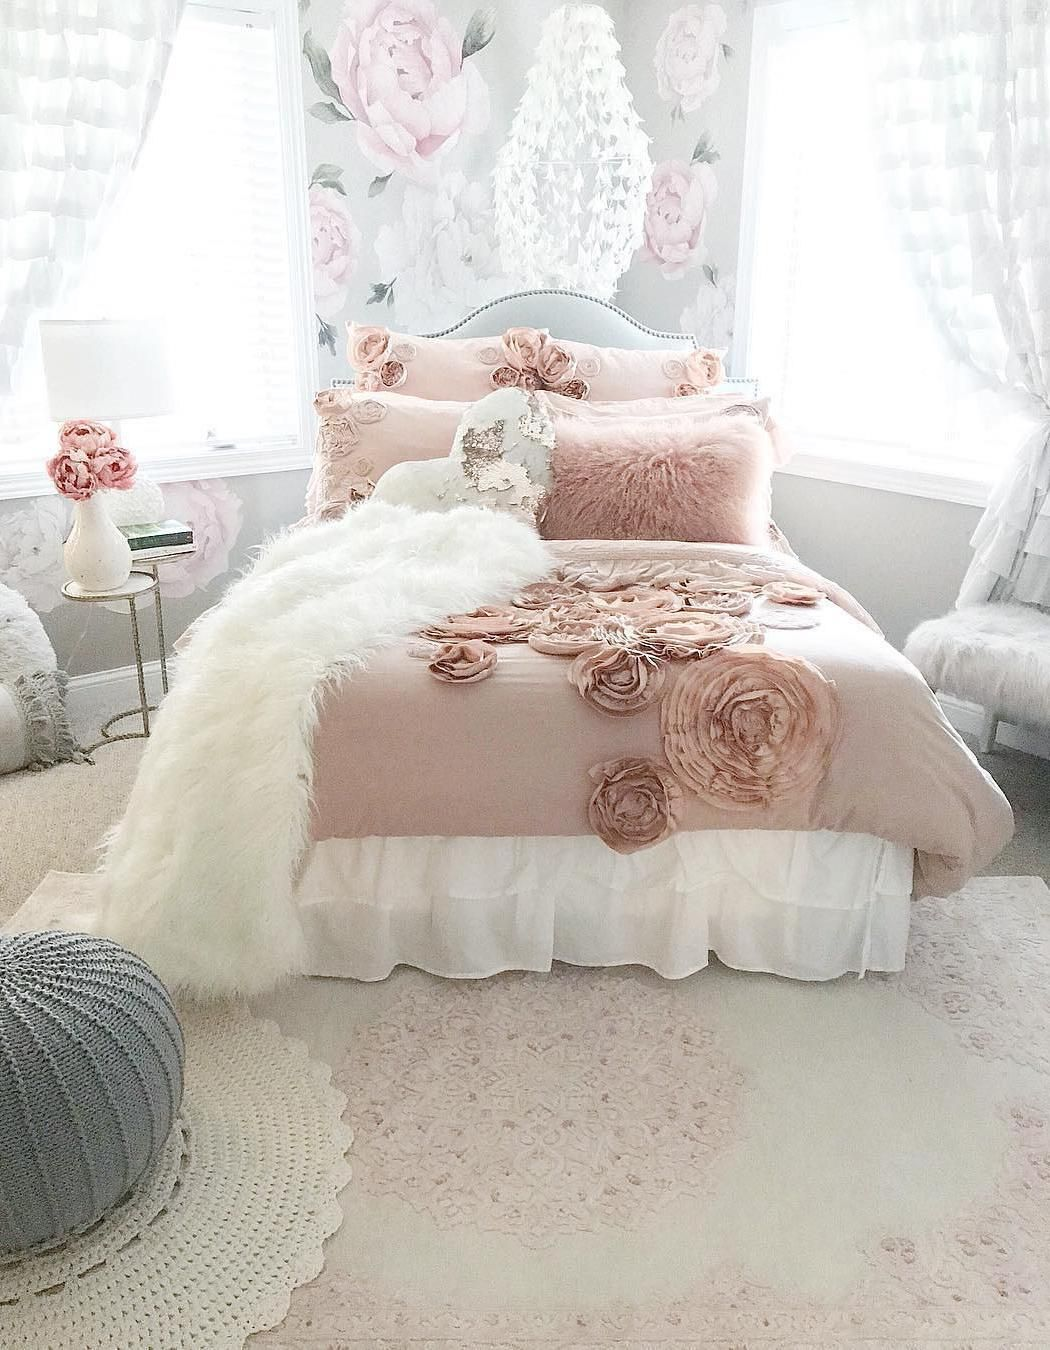 Most Romantic Bedroom Decor: 55 Sweet And Most Romantic Bedroom Furniture Ideas